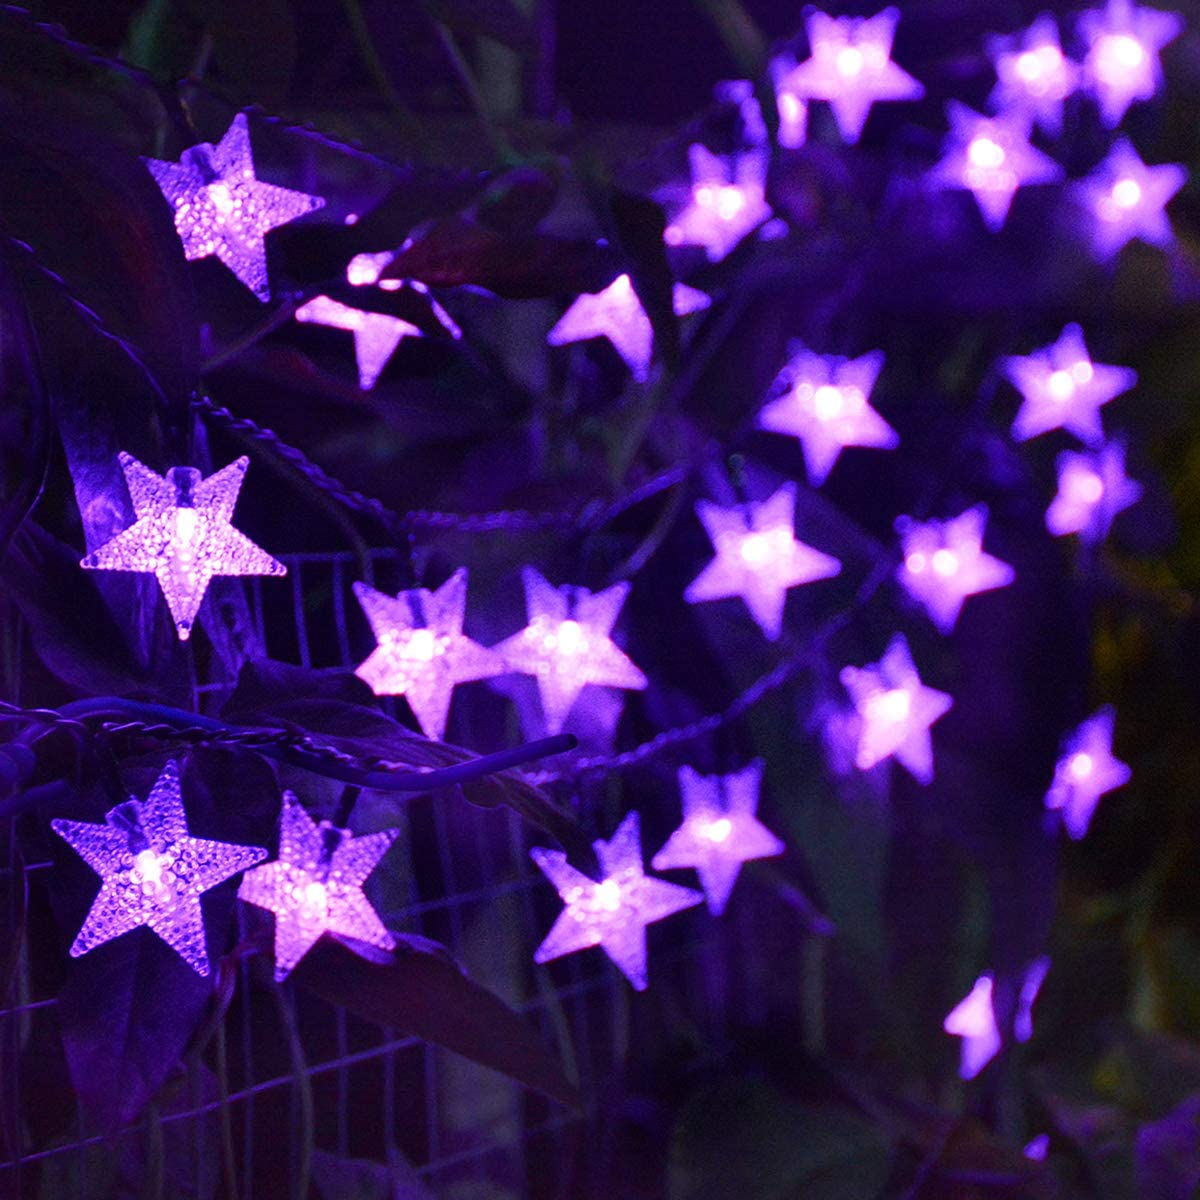 Chasgo Solar Purple Star Lights Outdoor, 30FT 50 LED Purple Halloween Lights Outdoor, Waterproof Solar String Lights for Christmas Halloween Party Garden Yard Patio Tree Home Decor